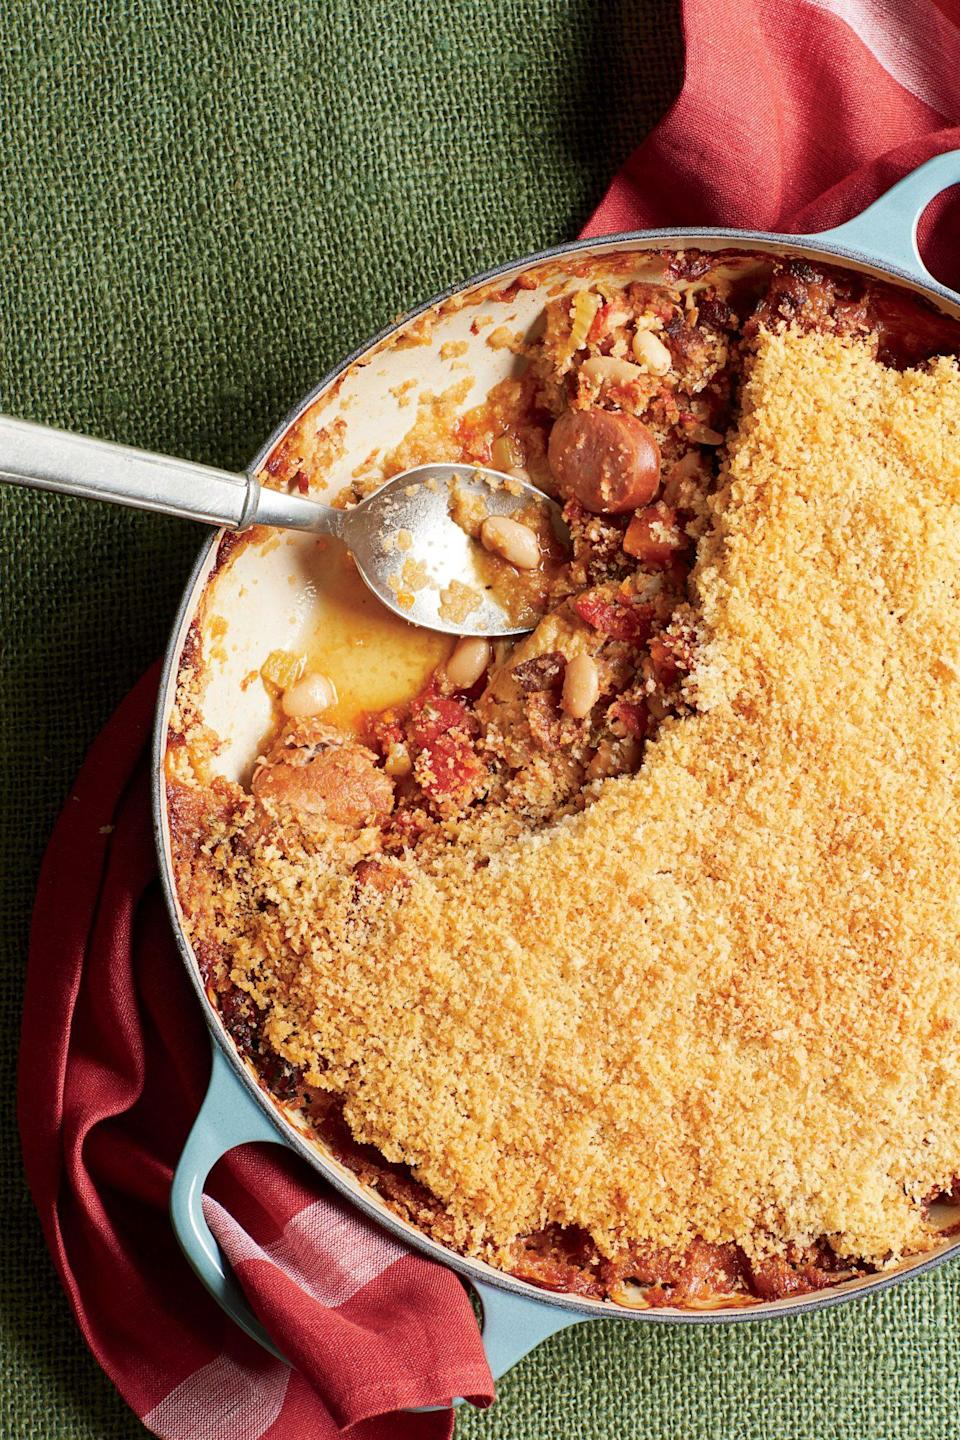 """<p><strong>Recipe: <a href=""""https://www.southernliving.com/syndication/faux-cassoulet"""" rel=""""nofollow noopener"""" target=""""_blank"""" data-ylk=""""slk:Faux Cassoulet"""" class=""""link rapid-noclick-resp"""">Faux Cassoulet</a></strong></p> <p>Juicy chicken thighs and country-style pork ribs make a hearty, savory dinner with veggies and beans. The crispy breadcrumb topping adds just the right amount of crunch.</p>"""